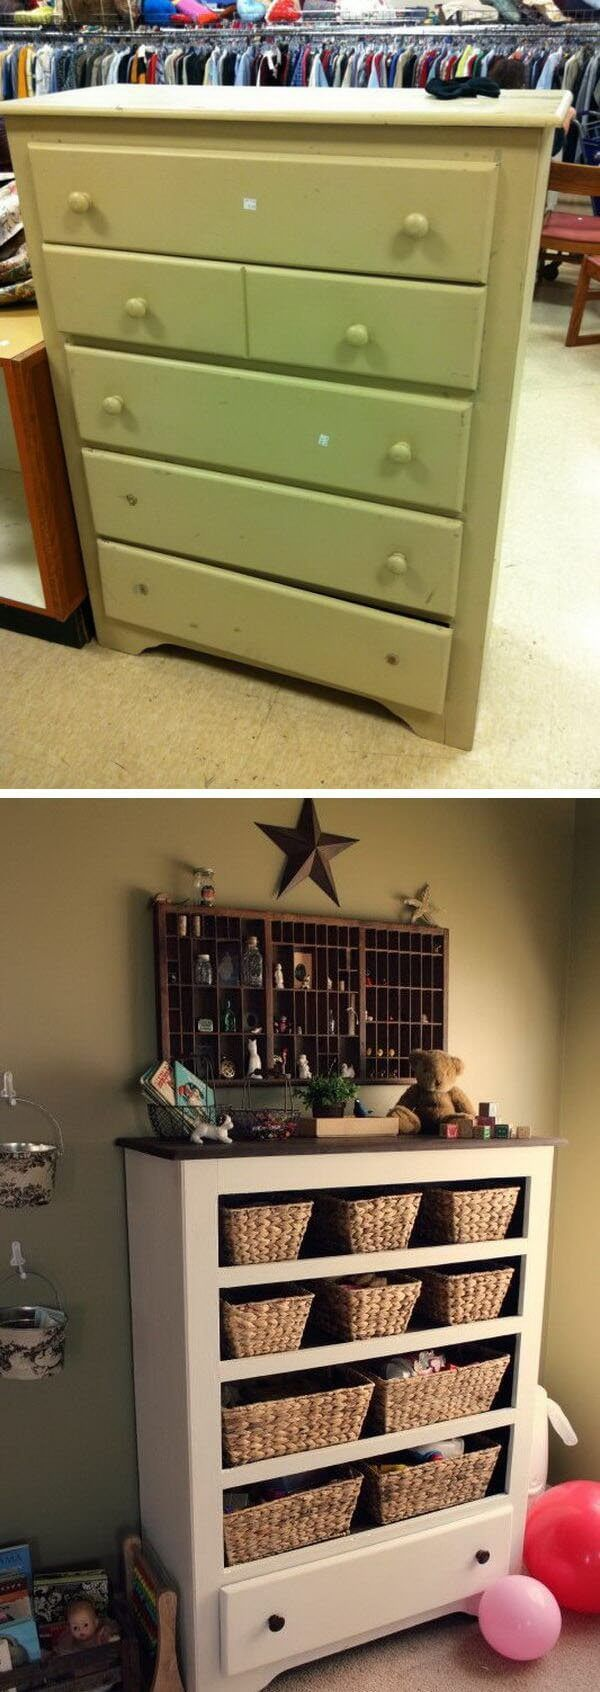 Best 25 funny home decor ideas on pinterest funny for Kitchen remake ideas